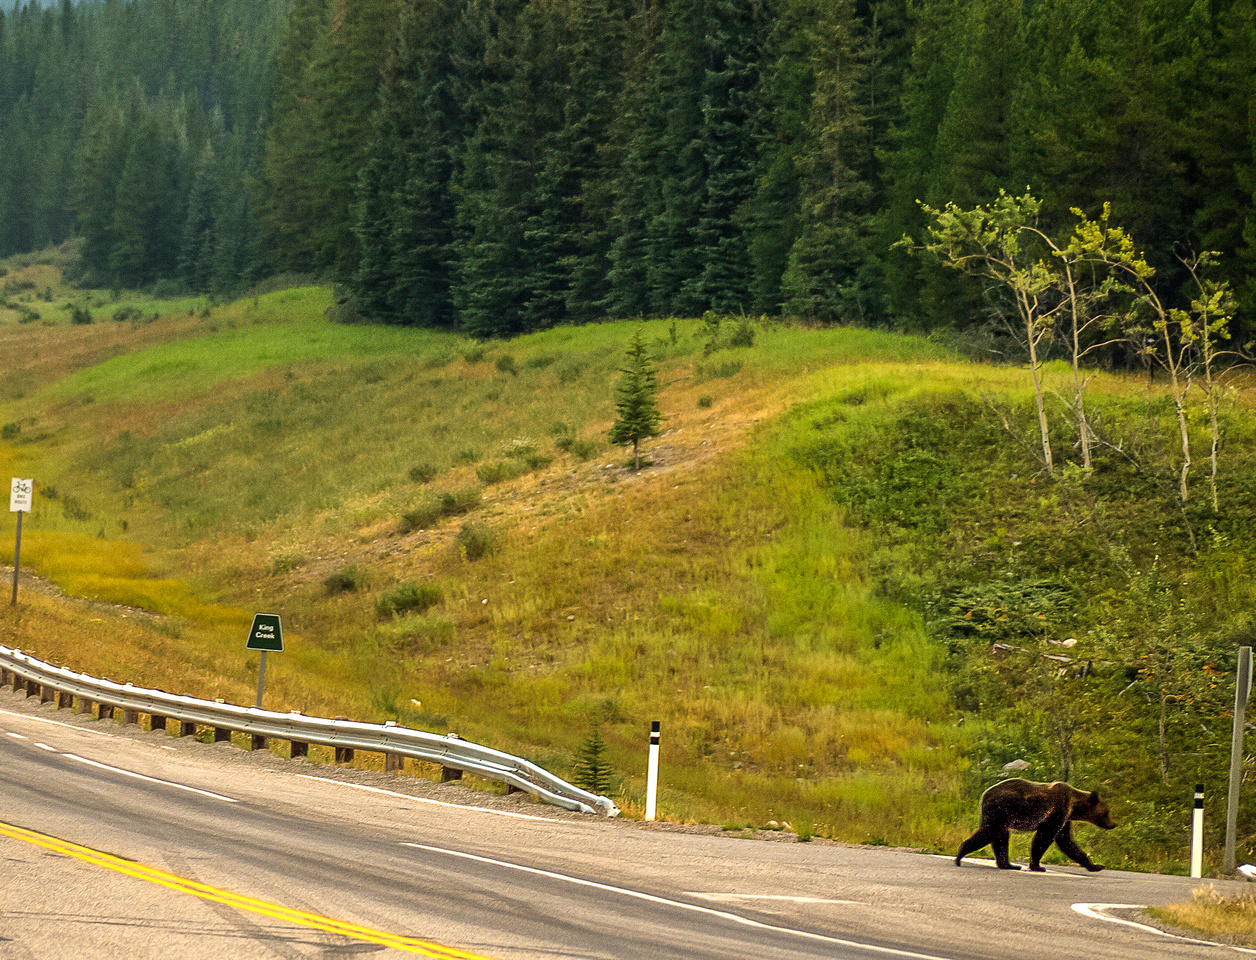 A young grizzly crosses the road at the junction of highway 40 and Kananaskis trail.